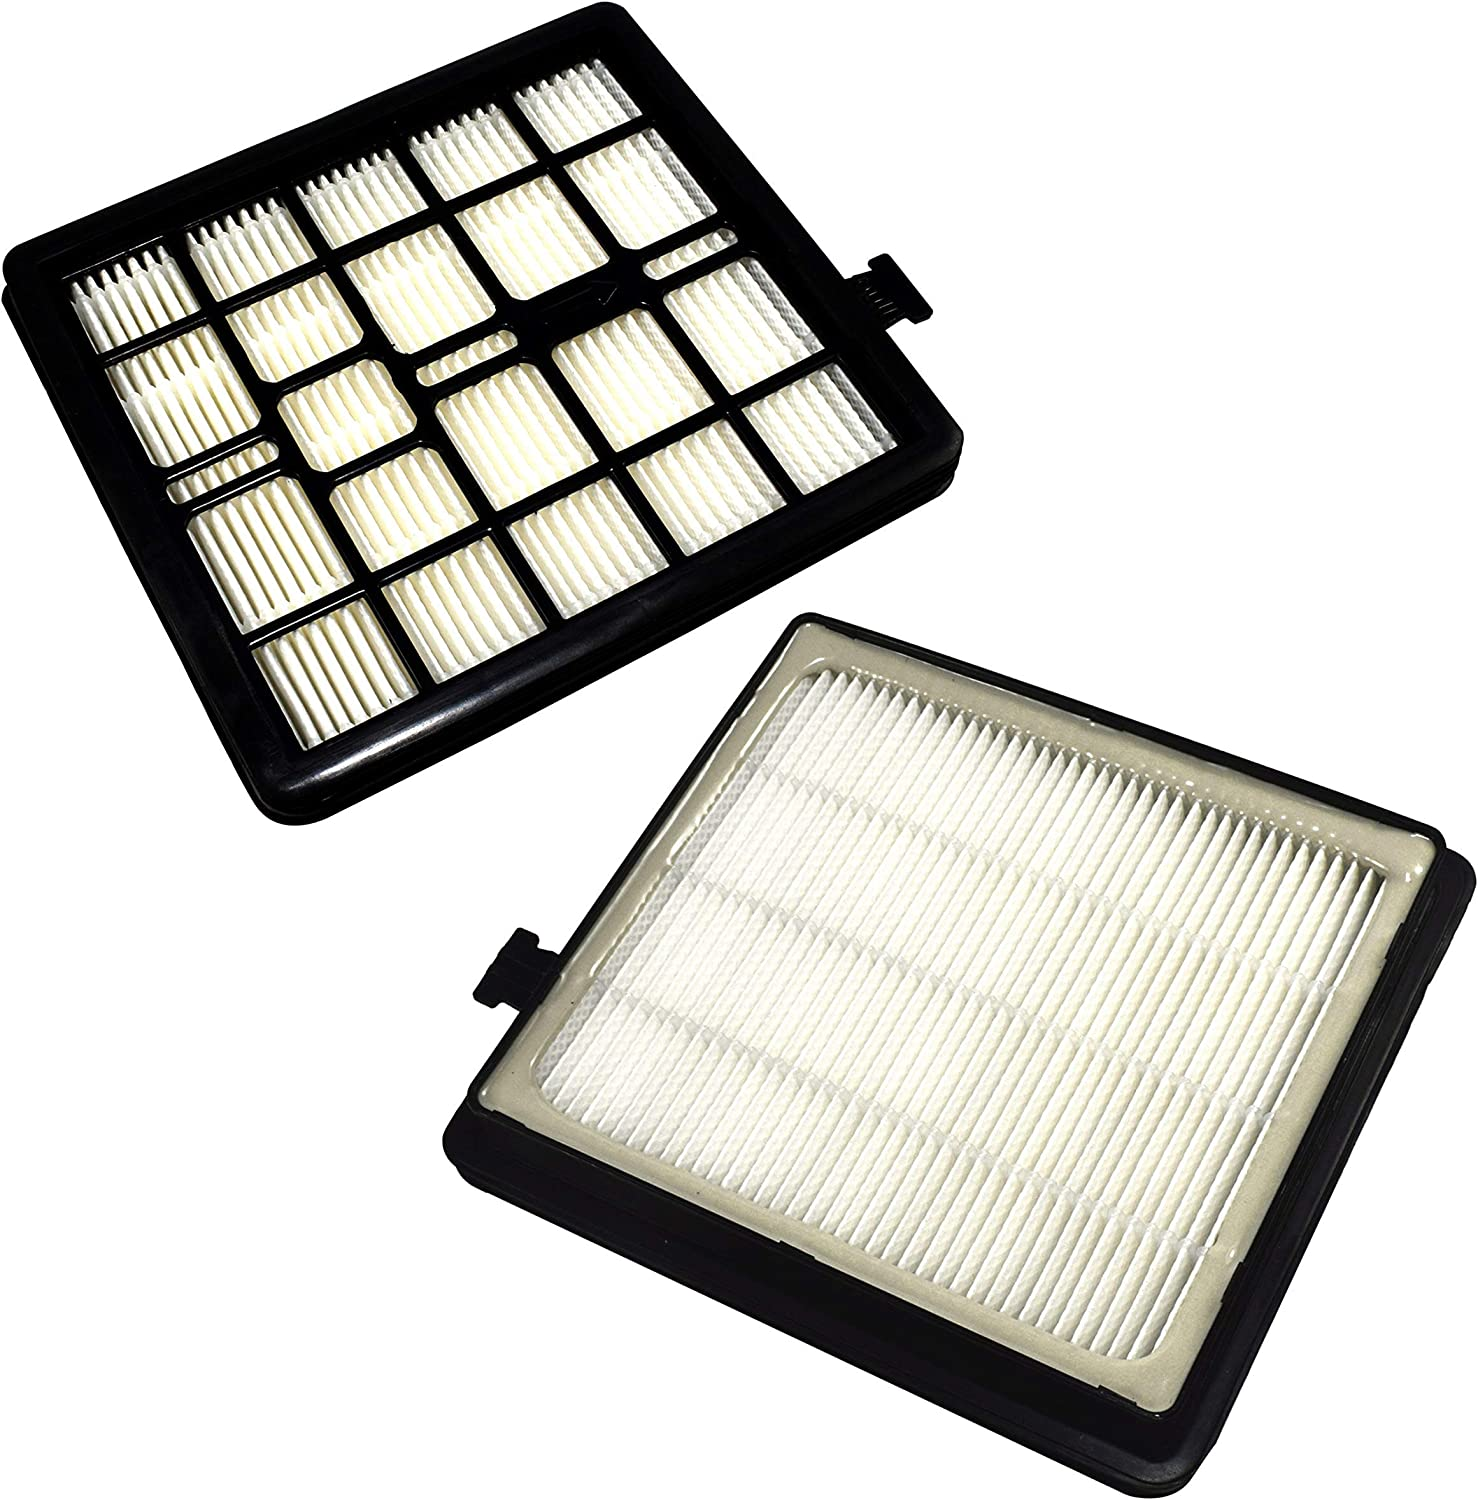 A Quantity limited surprise price is realized HQRP 2-pack Filter compatible with pa Type Dirt F45 Devil